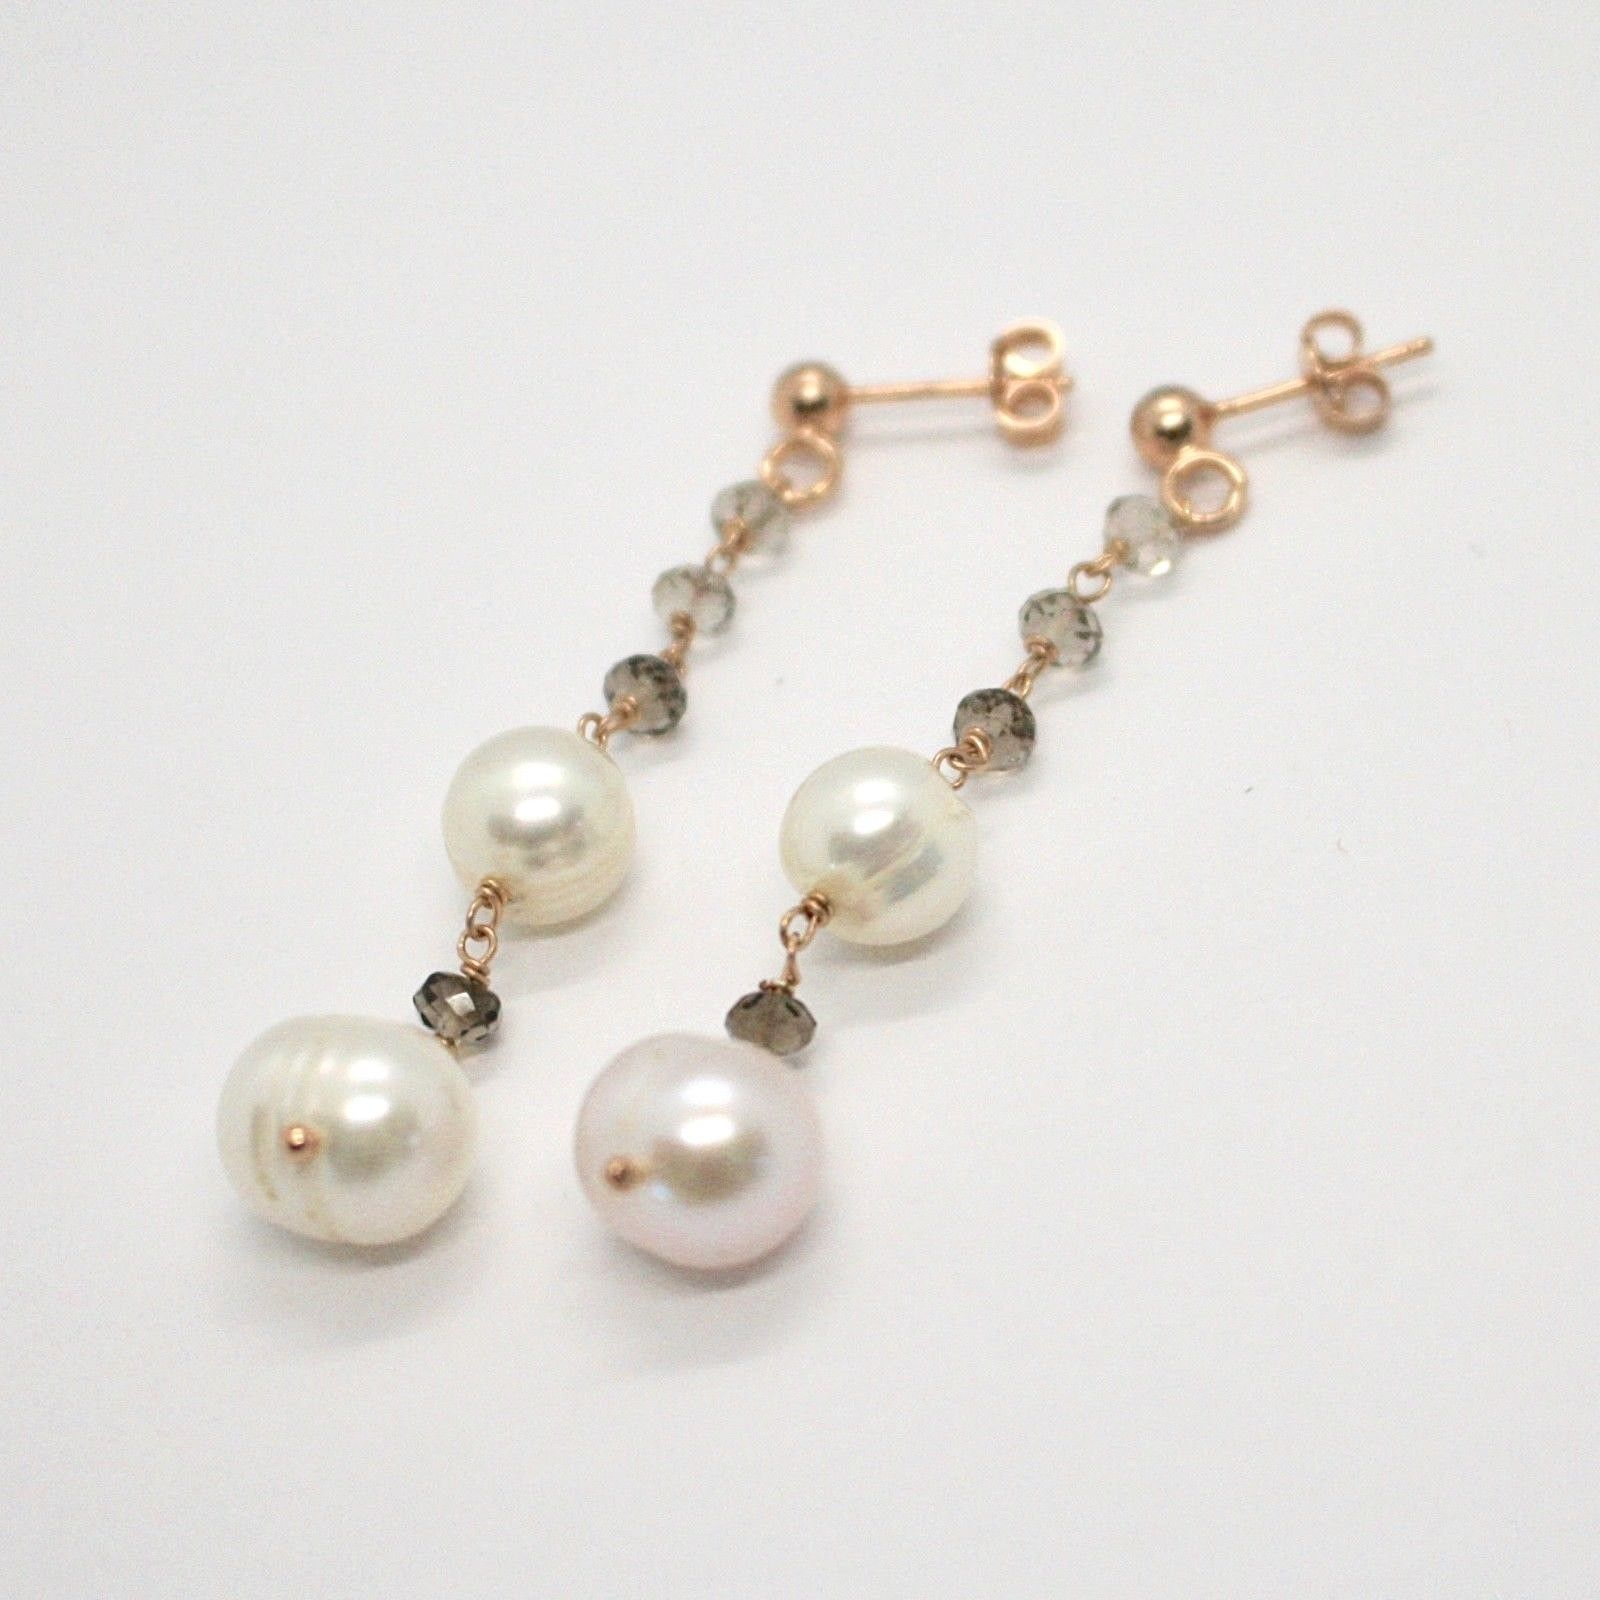 Drop Earrings in Silver 925 Laminate Rose Gold with Pearls and Smoky Quartz